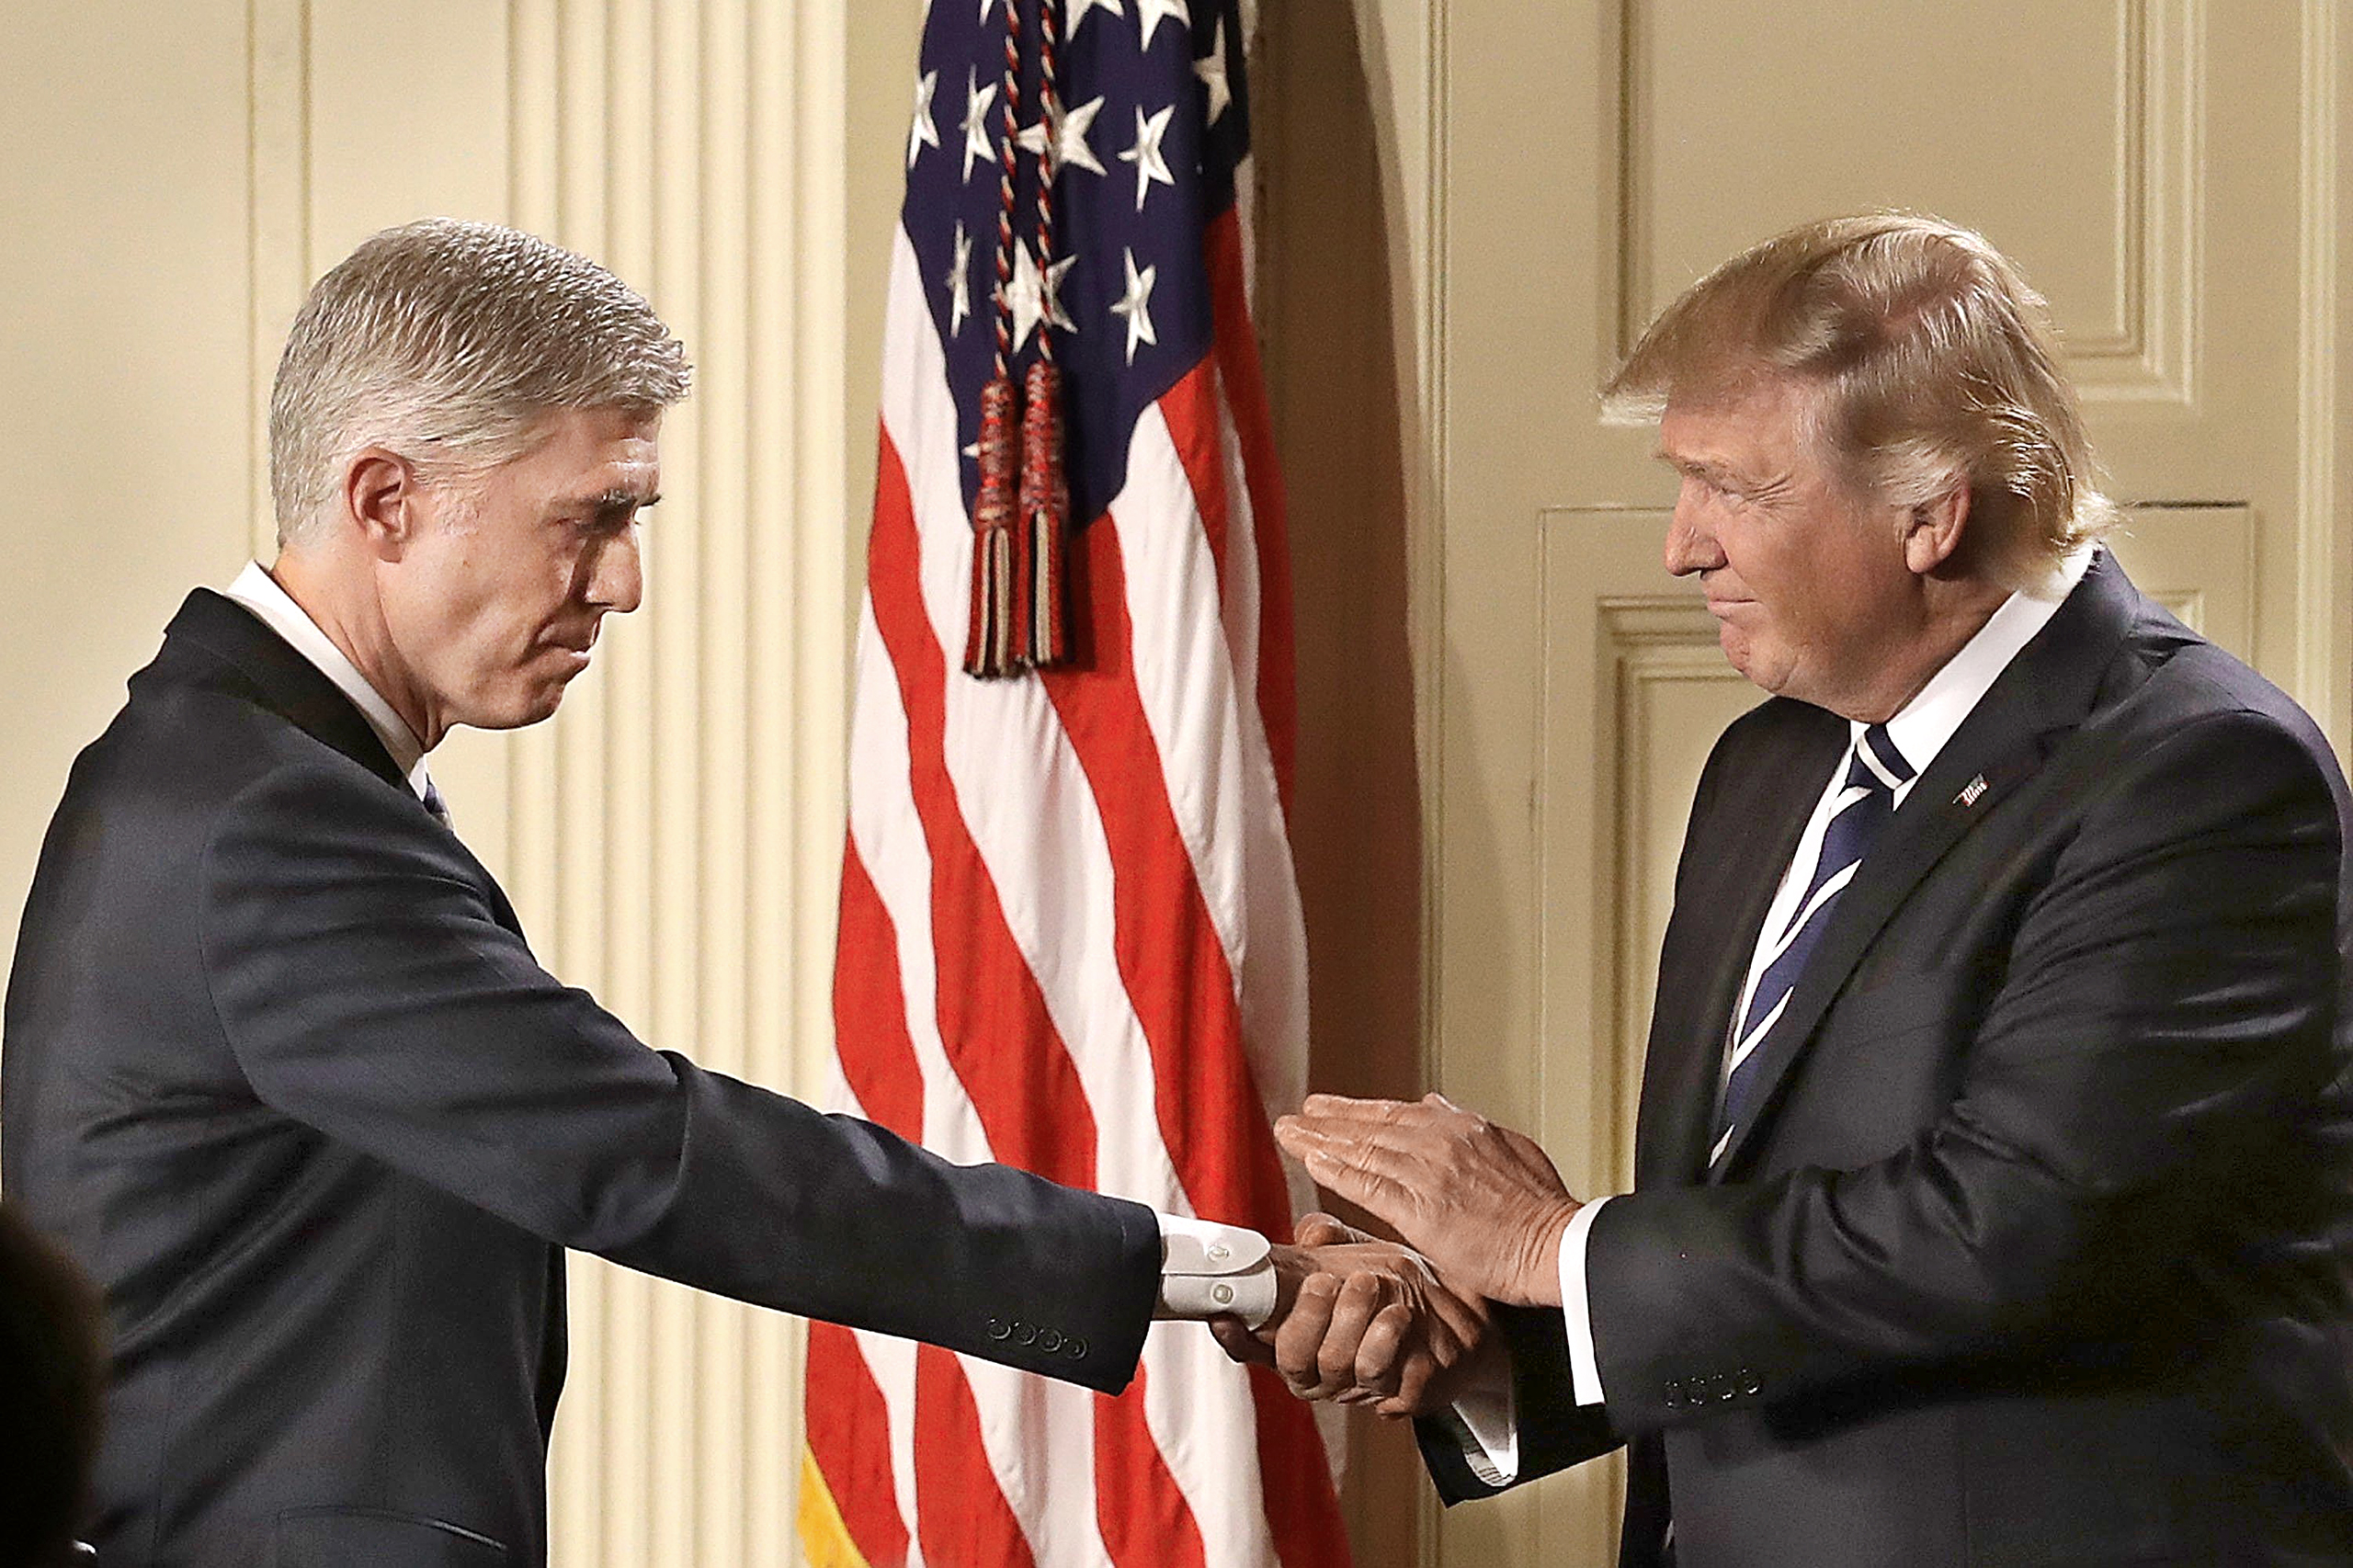 resident Trump announces Gorsuch as his nominee to the Supreme Court on Jan. 31